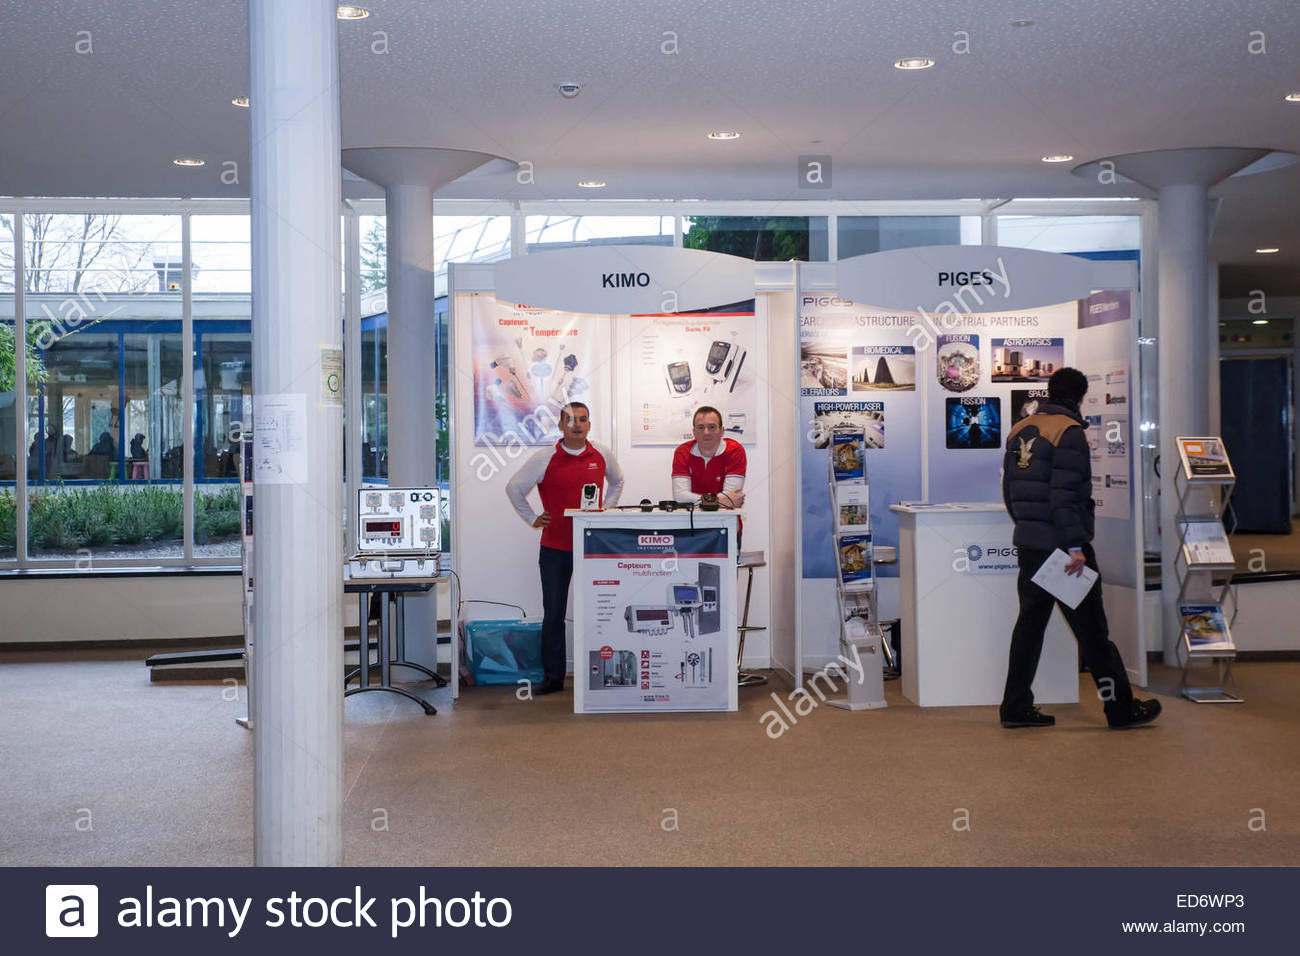 French companies at the Cern exhibition presenting their products to managers, CERN Geneva, December 2014 - Stock Image